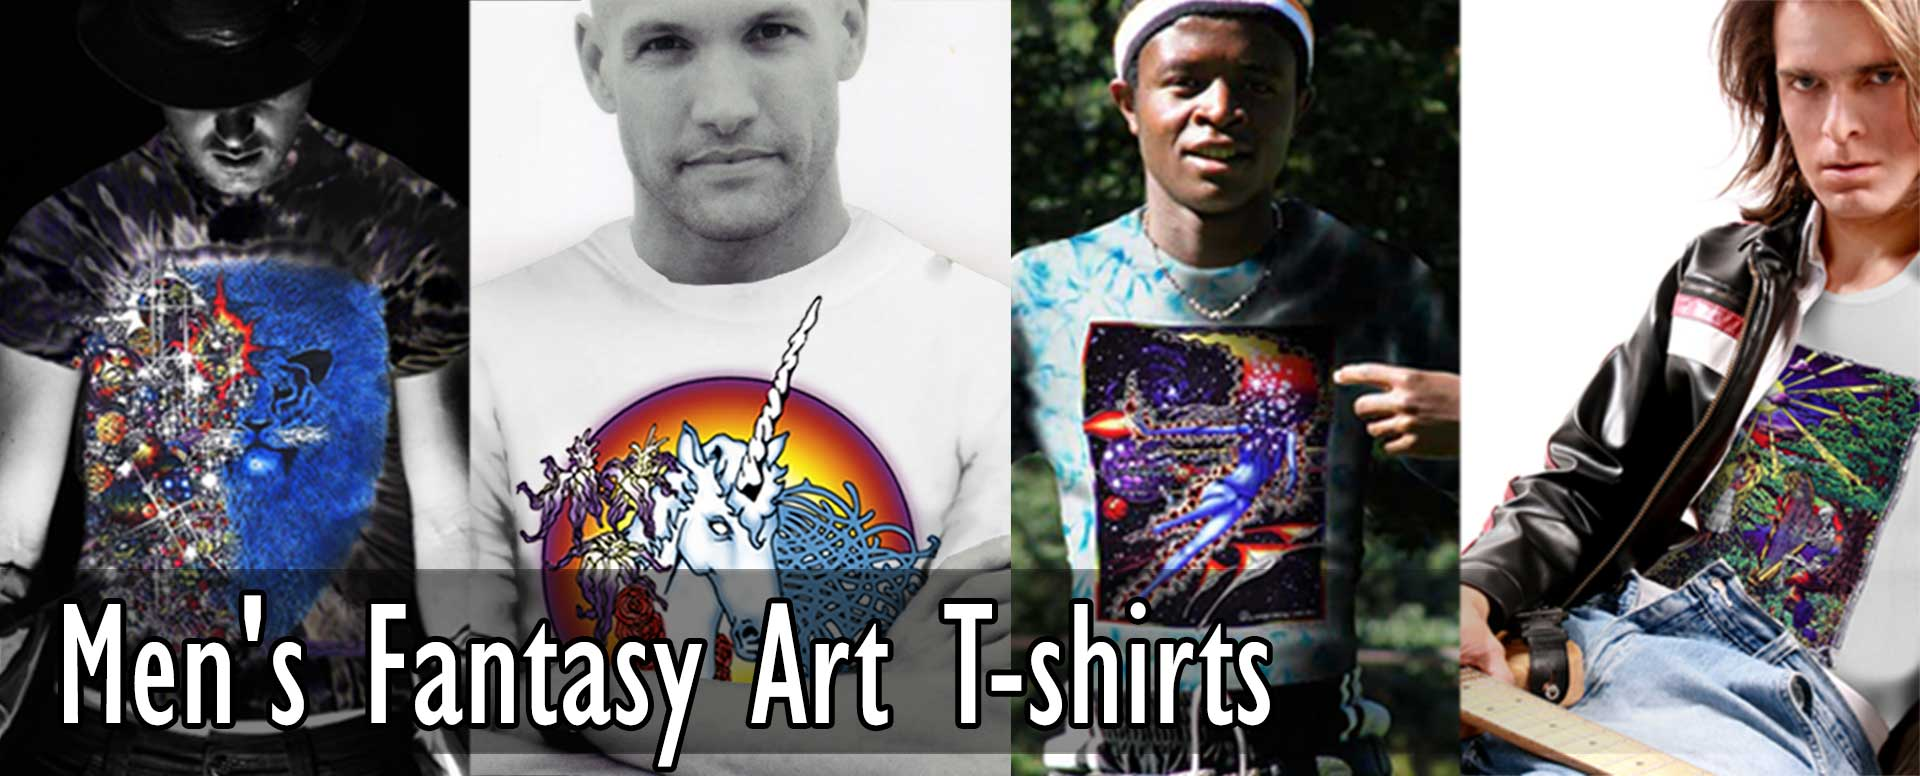 Men's Fantasy Art T-shirts